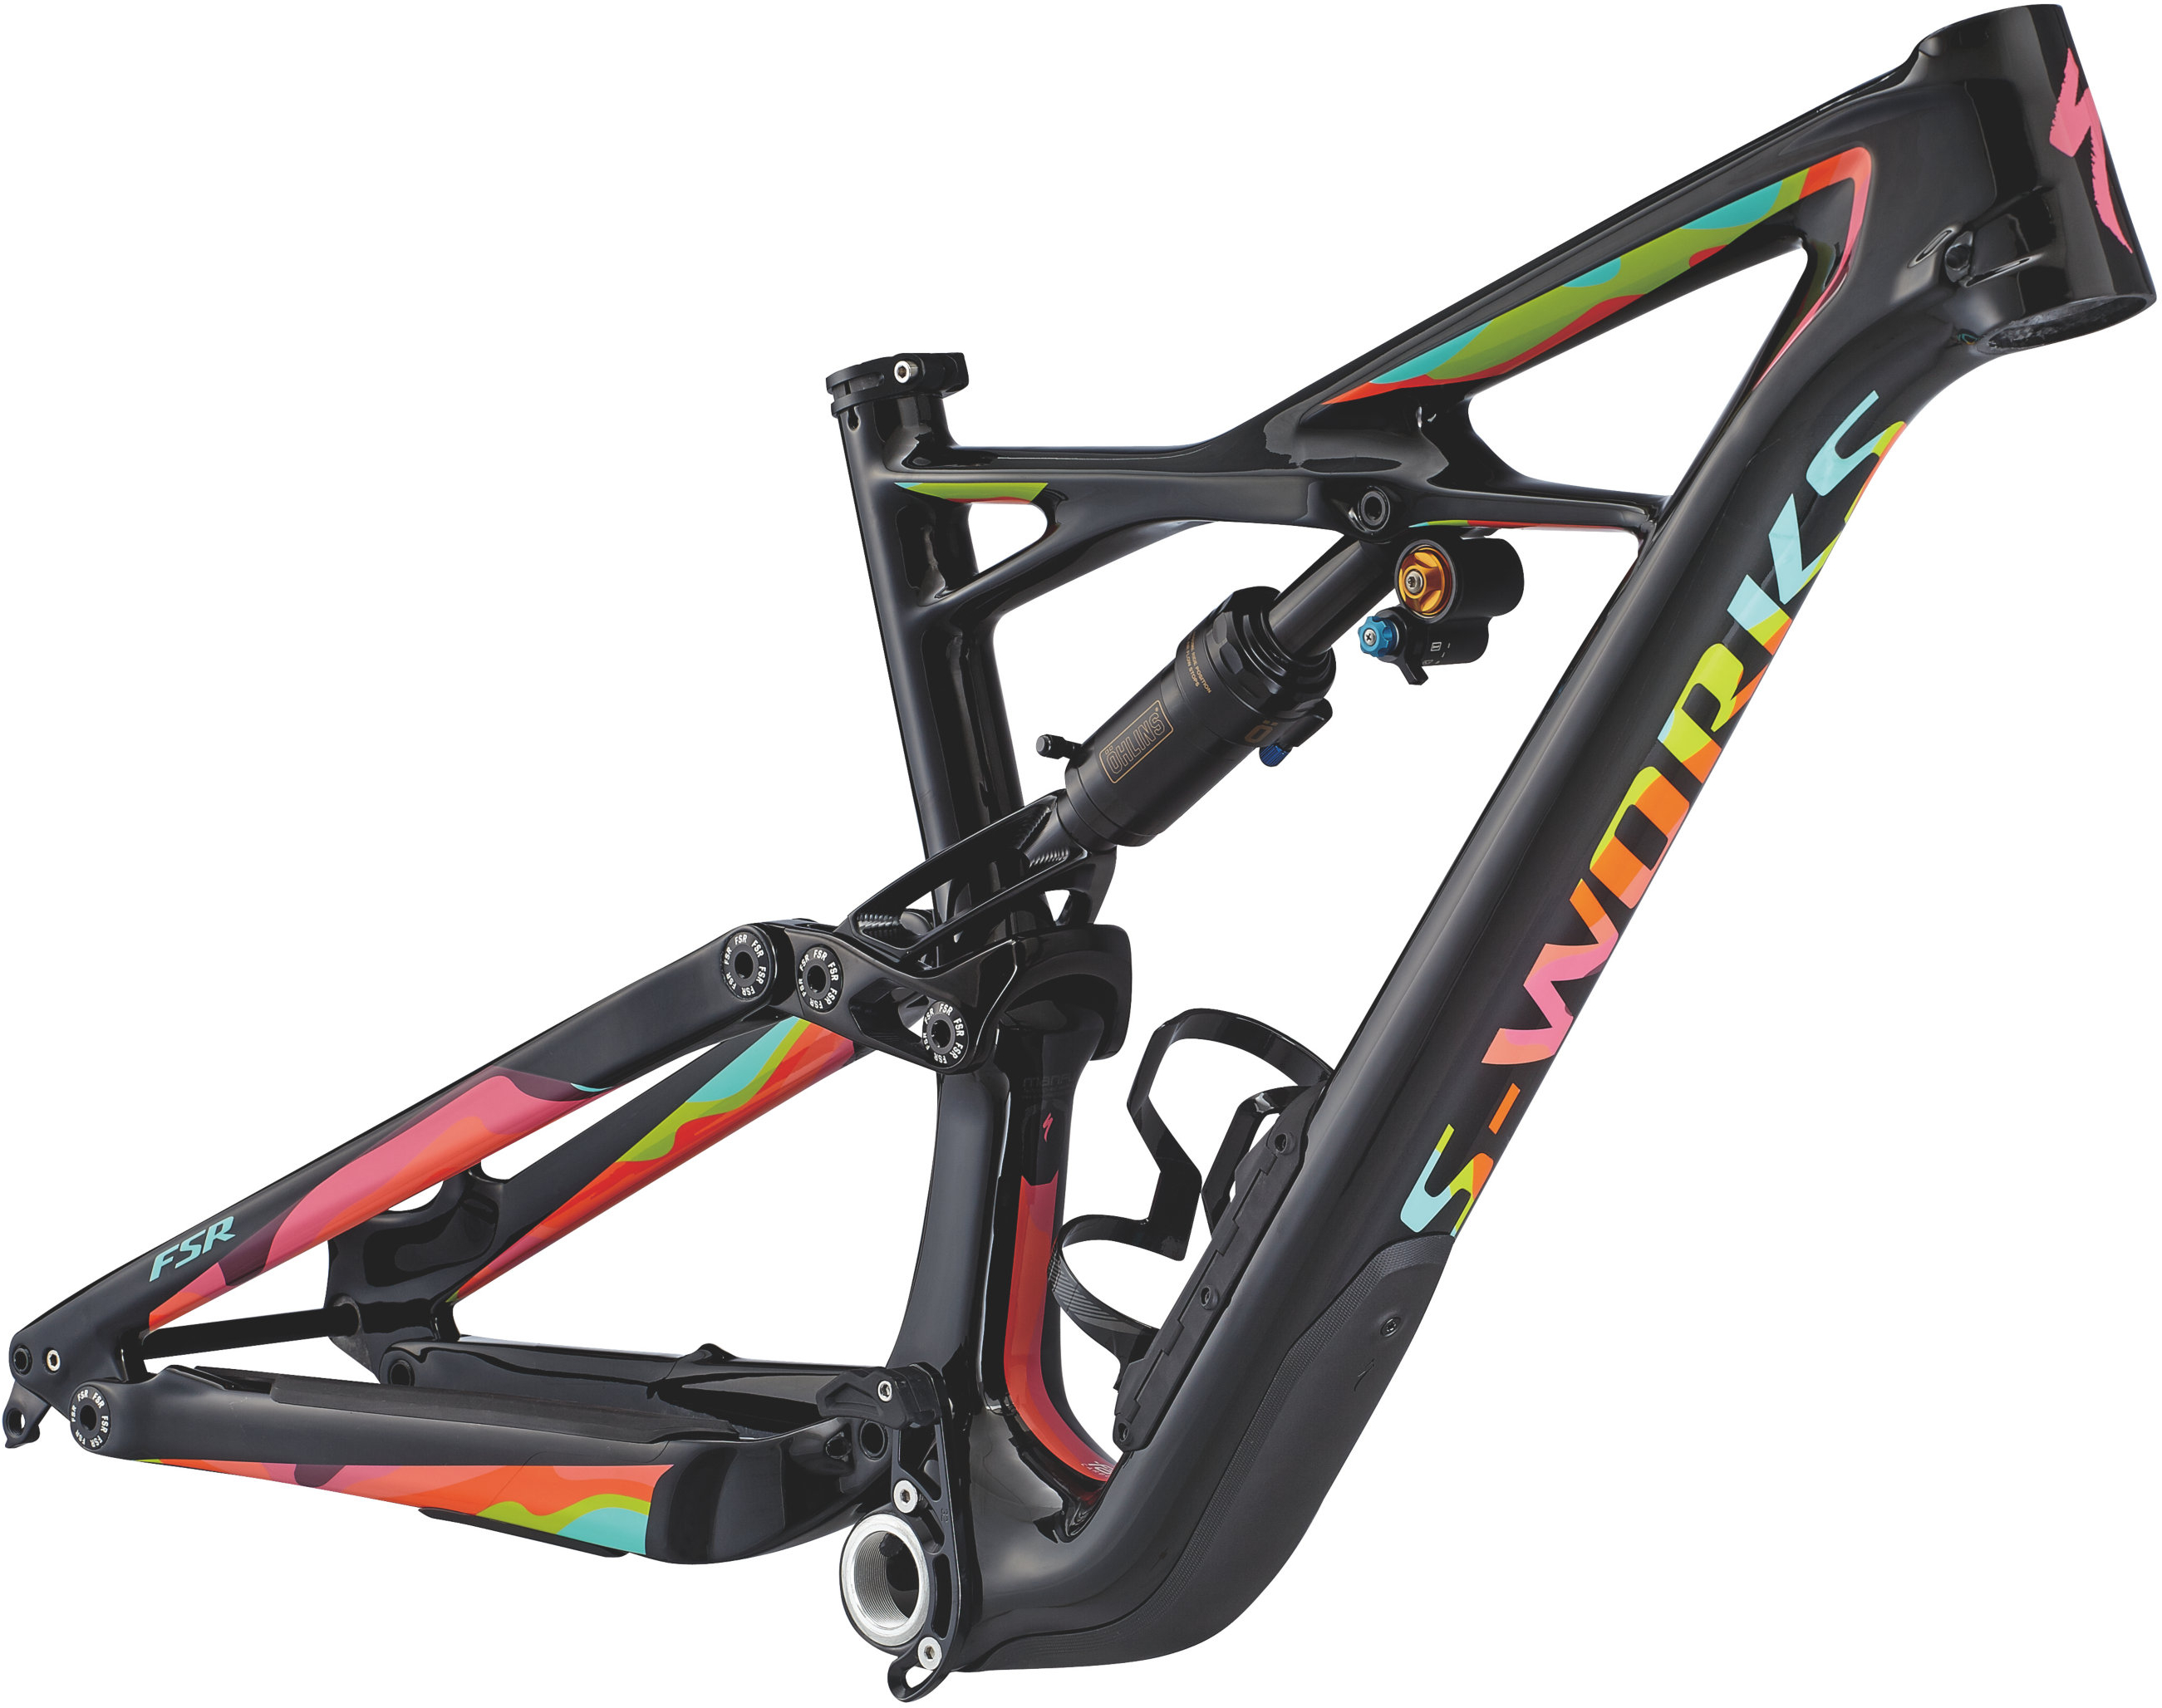 7b34f6ec27f 2017 Specialized S-WORKS ENDURO 650B - LIMITED EDITION FRAME - Specialized  Concept Store